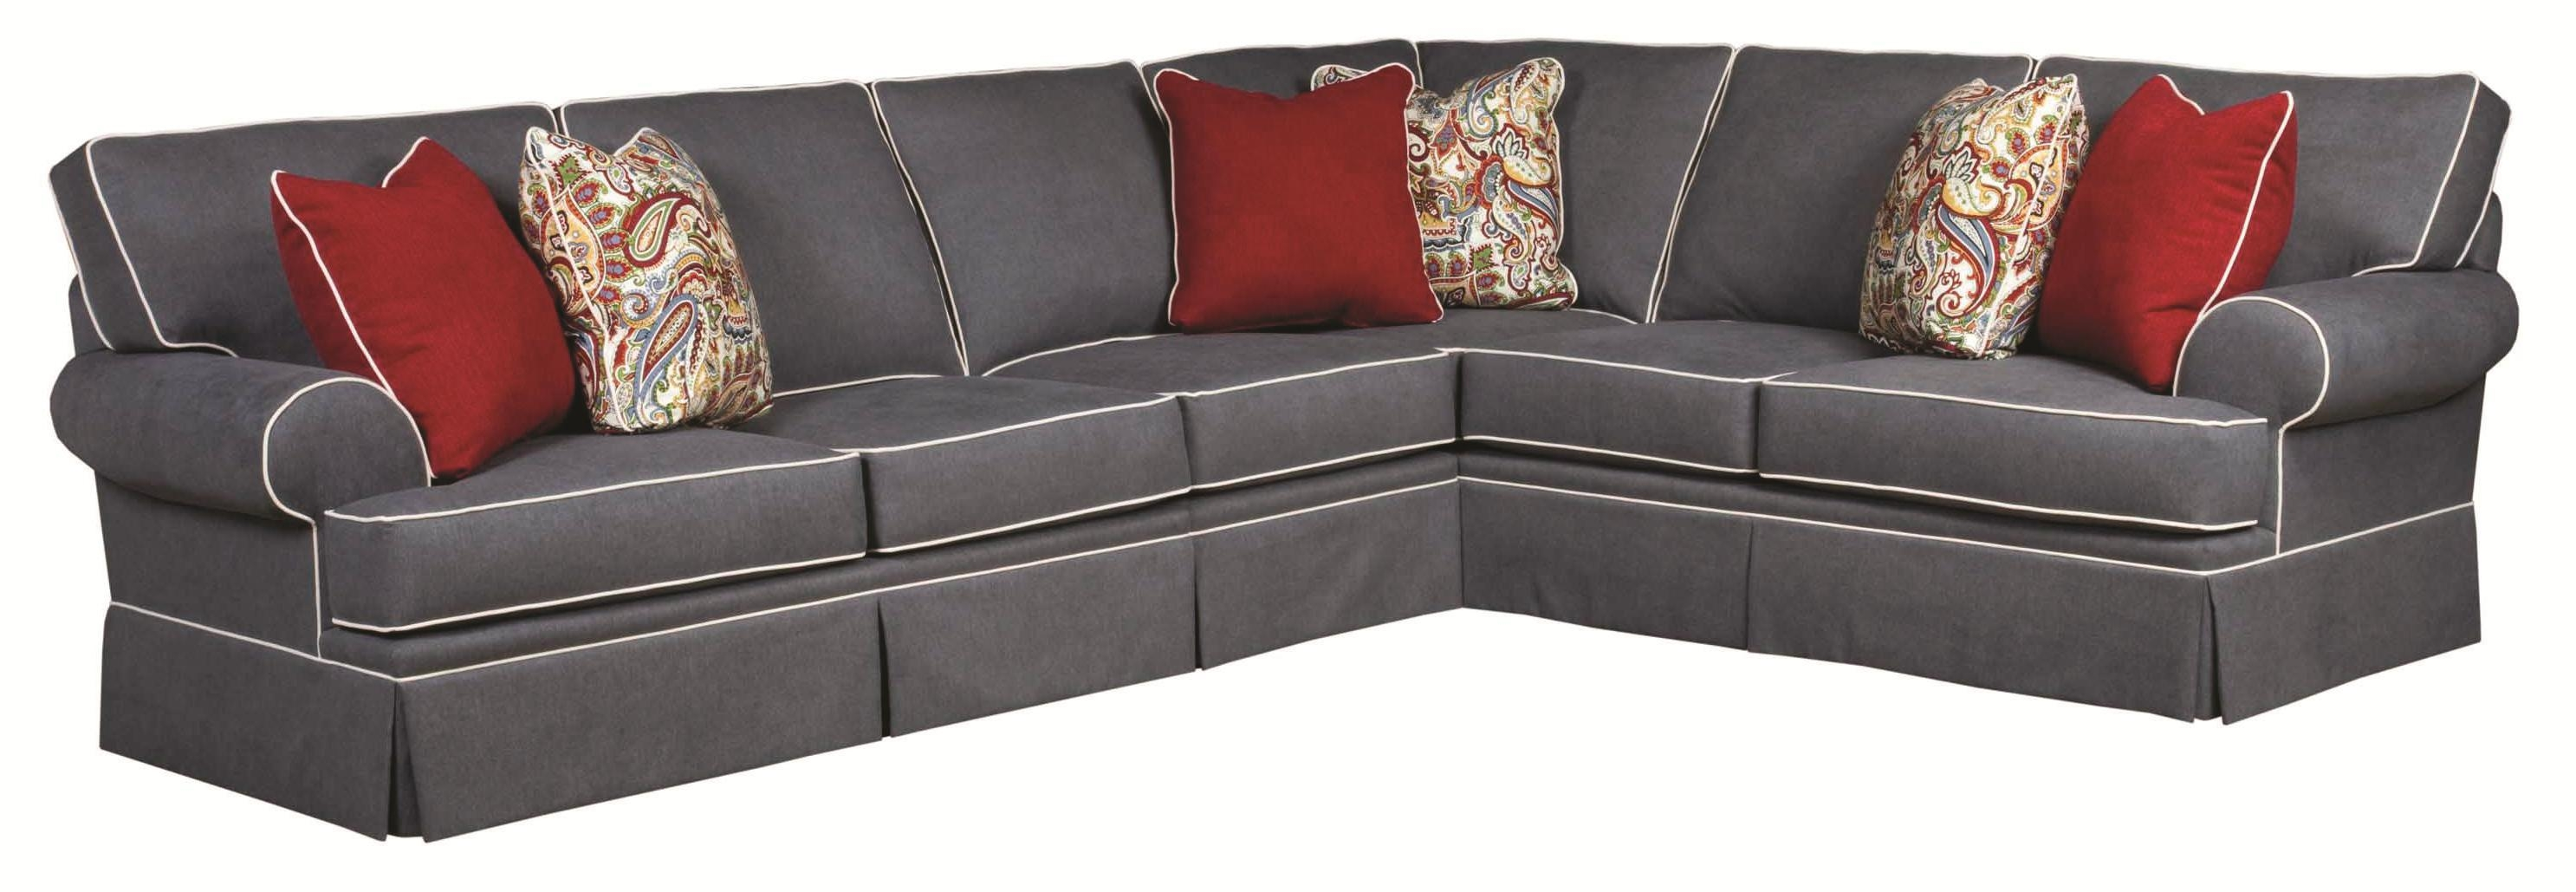 Broyhill Furniture Emily Traditional 3 Piece Sectional Sofa With Intended For Broyhill Reclining Sofas (View 7 of 20)